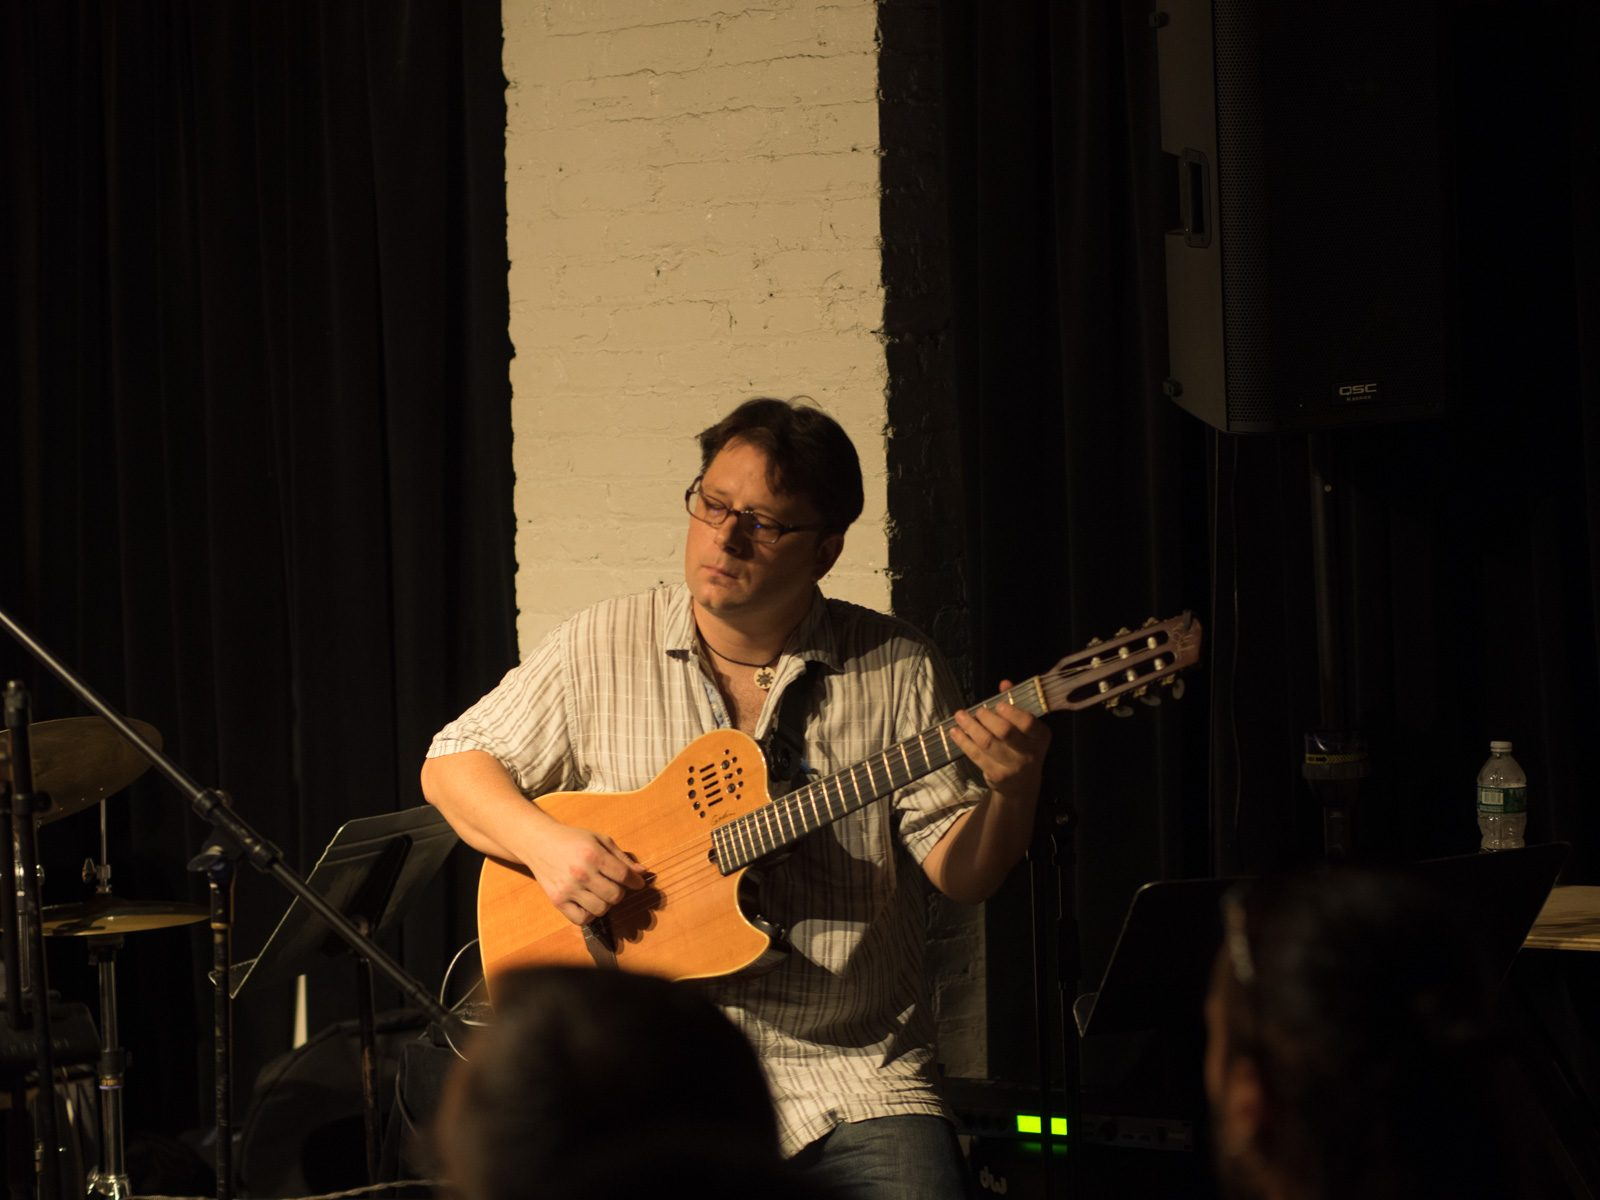 Eric Kurimski on Acoustic Guitar